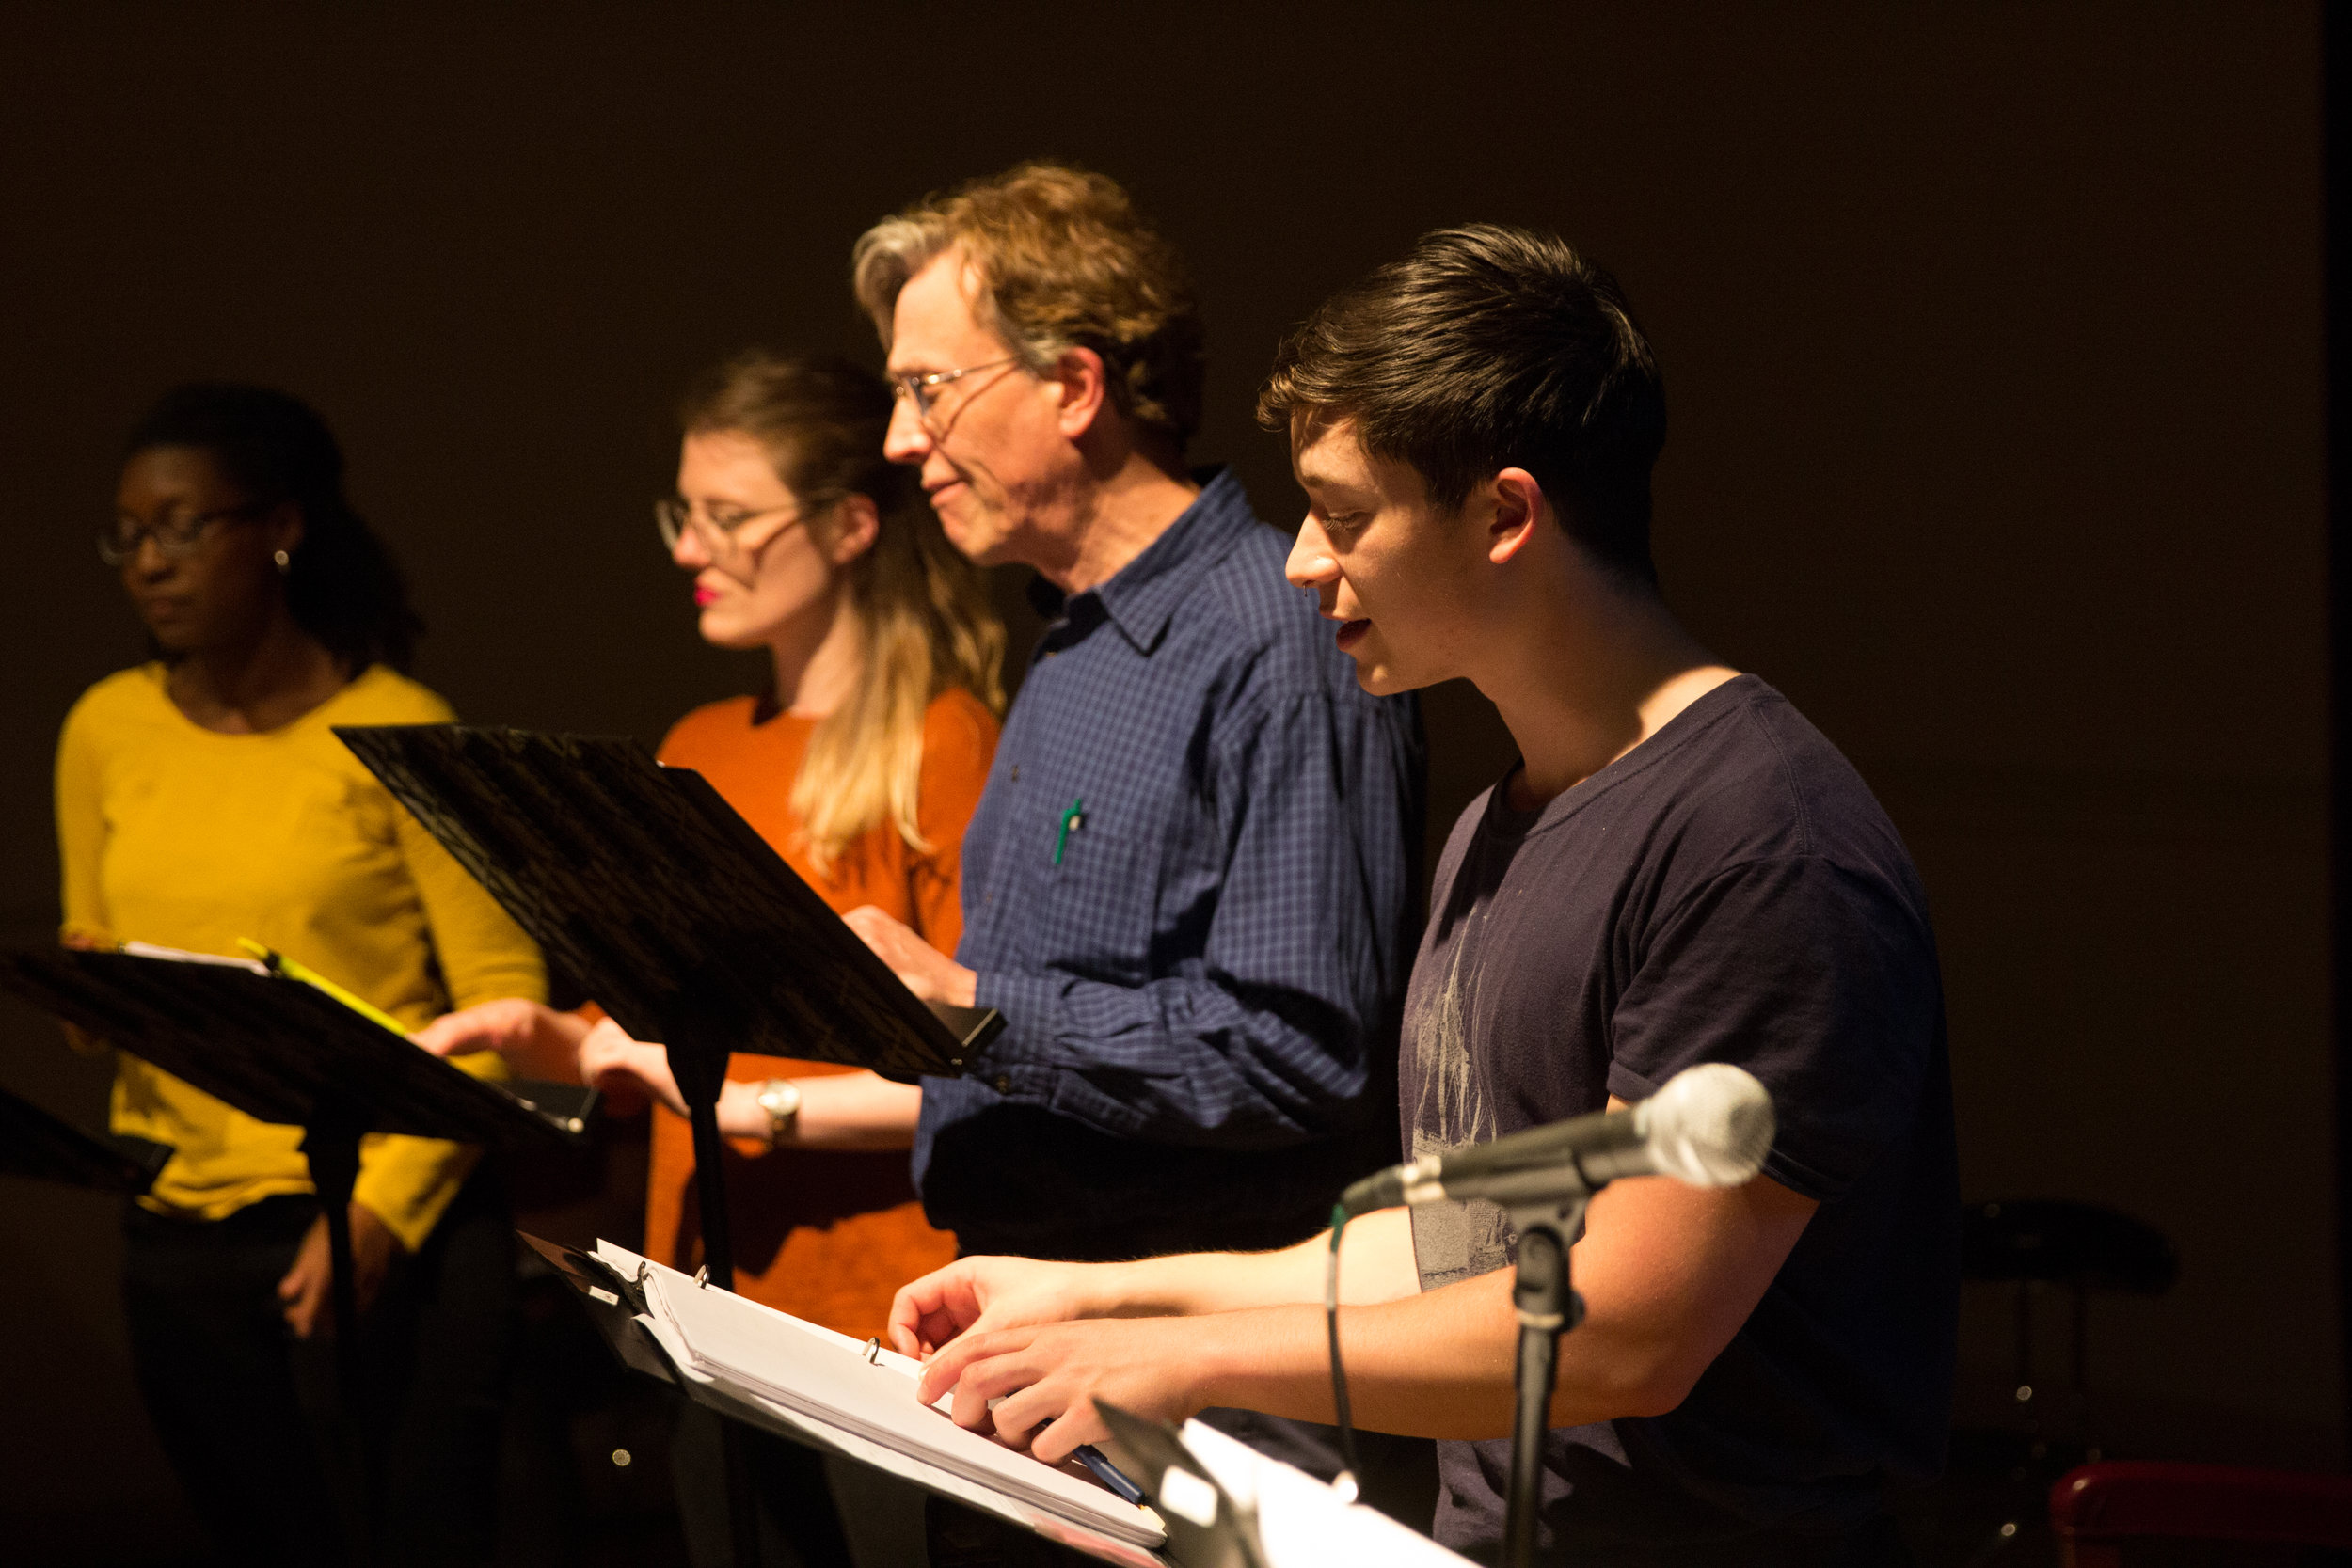 Ensemble members (R to L) Quentin Nguyen-duy, Phil Thompson, Louise Hamill, and Blyss Cleveland